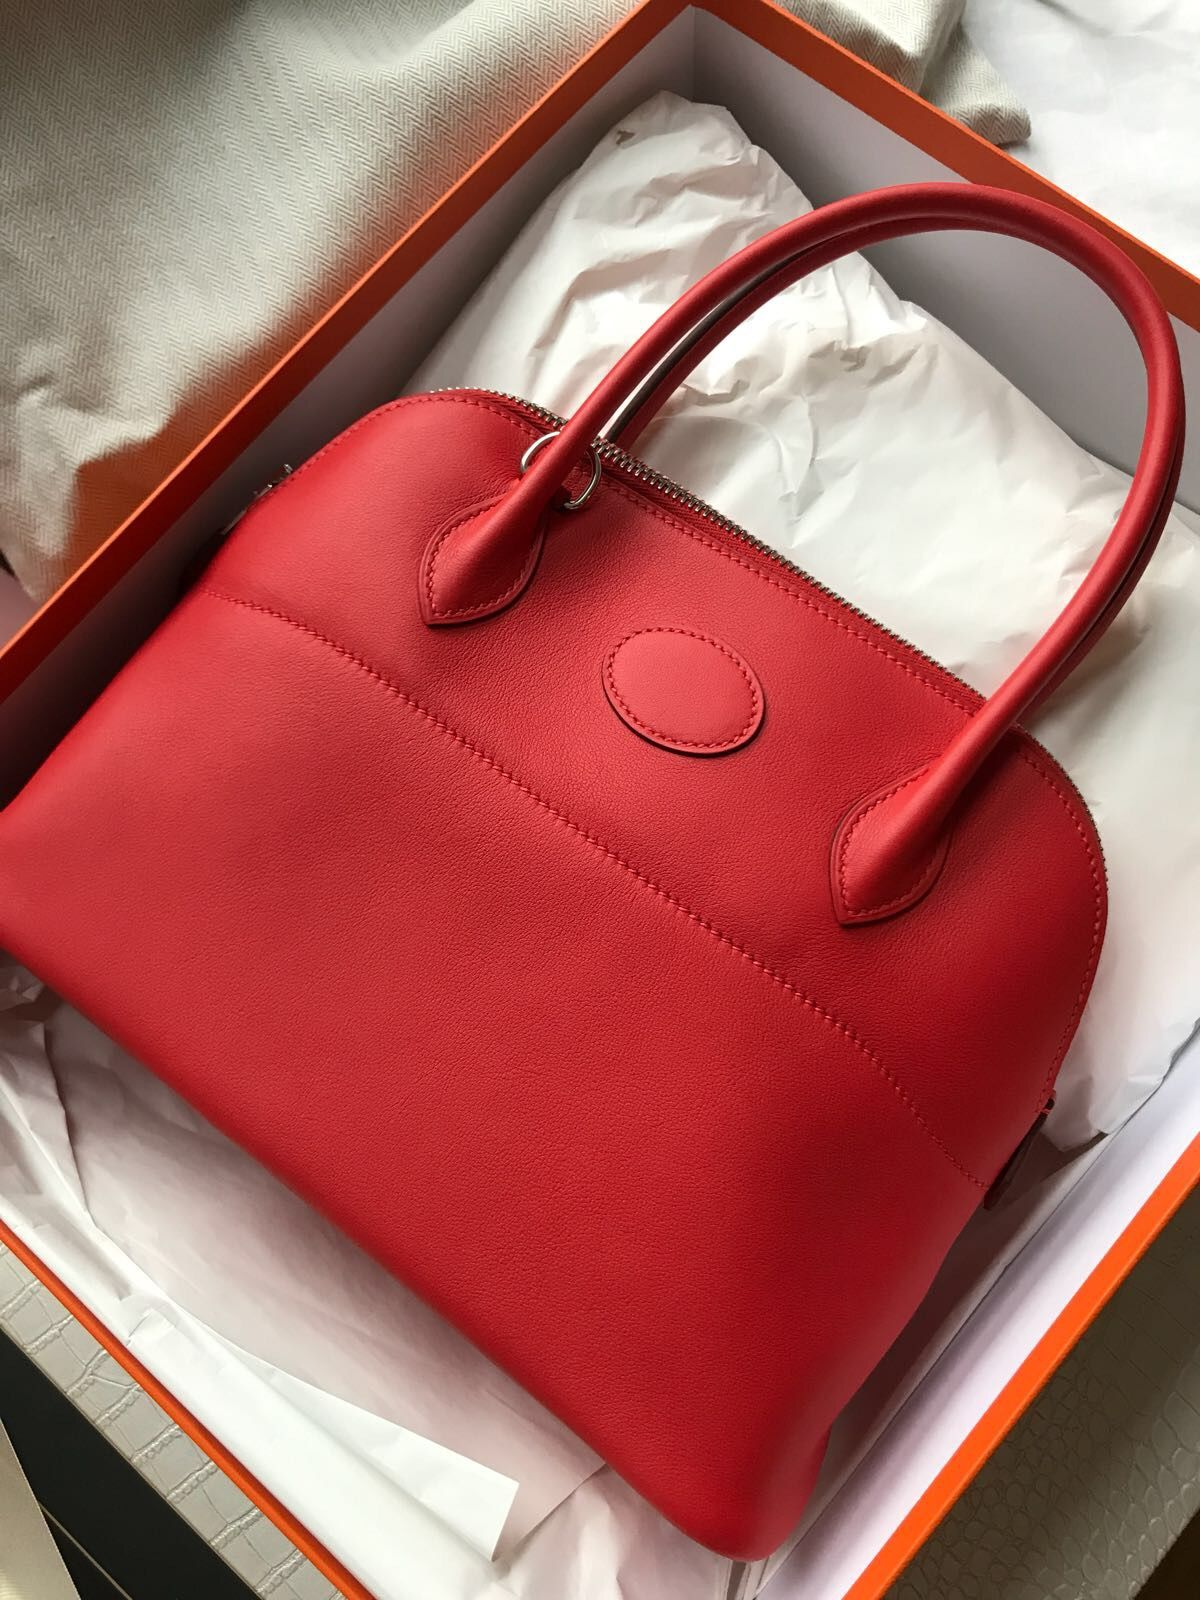 a3ec1df9781a Available Hermes Bolide 27 In Rouge Tomate Model  Hermes Bolide 27  Condition  New Stamp